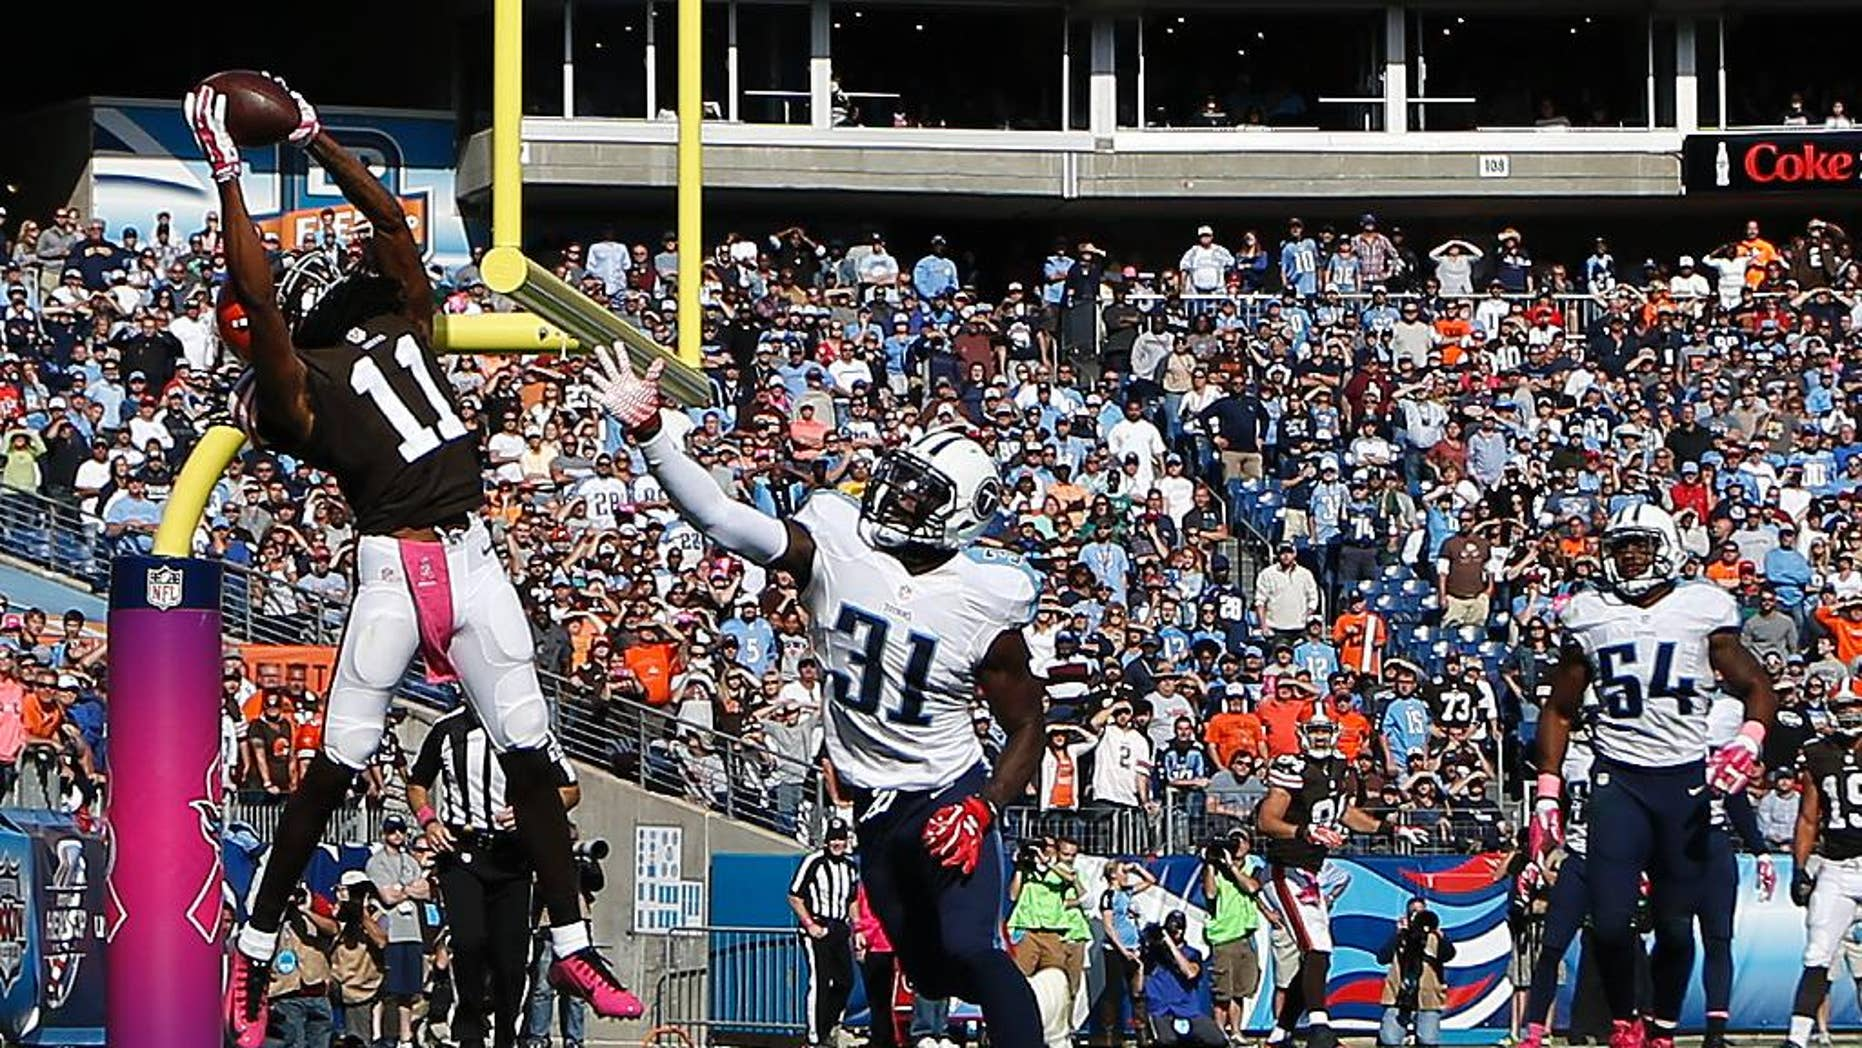 Tennessee Titans quarterback Jake Locker comes off the field after injuring his right hand in the second quarter of an NFL football game against the Cleveland Browns Sunday, Oct. 5, 2014, in Nashville, Tenn. (AP Photo/Mark Zaleski)